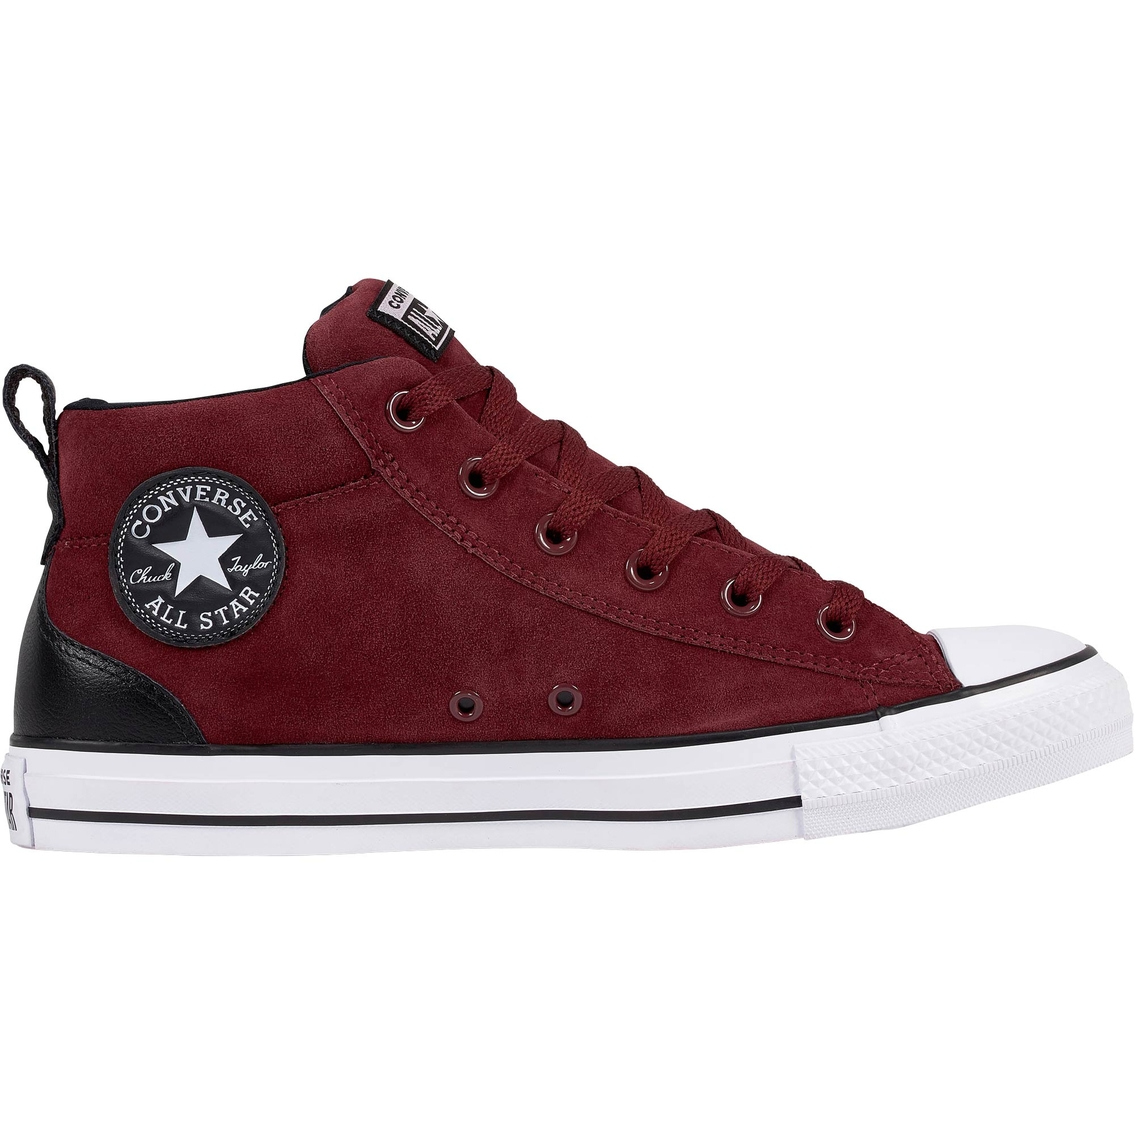 d52d3a9b0441 Converse Men s Chuck Taylor All-star Street Mid Sneakers